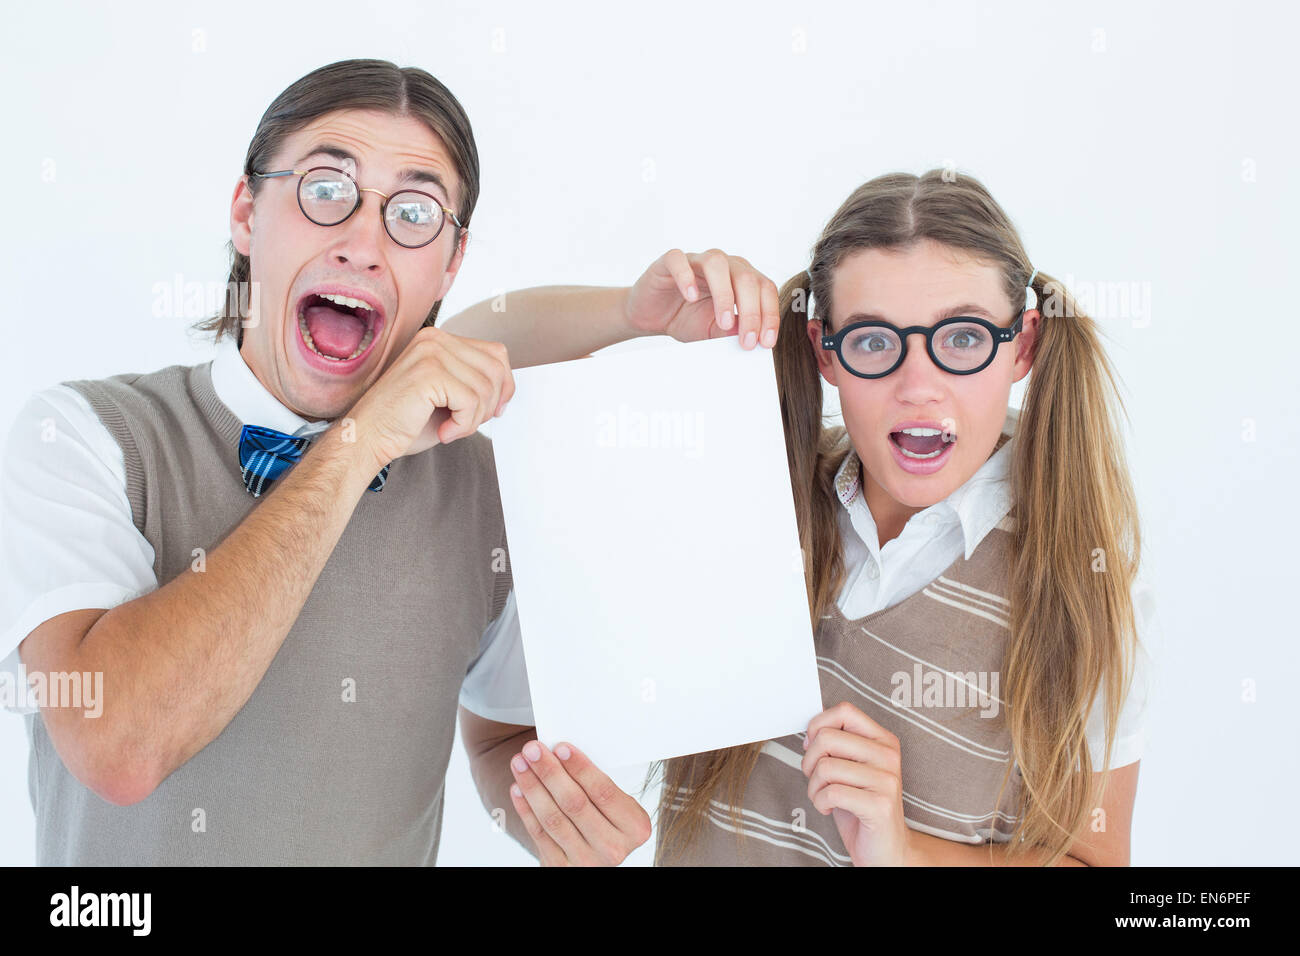 Geeky hipsters holding a poster - Stock Image